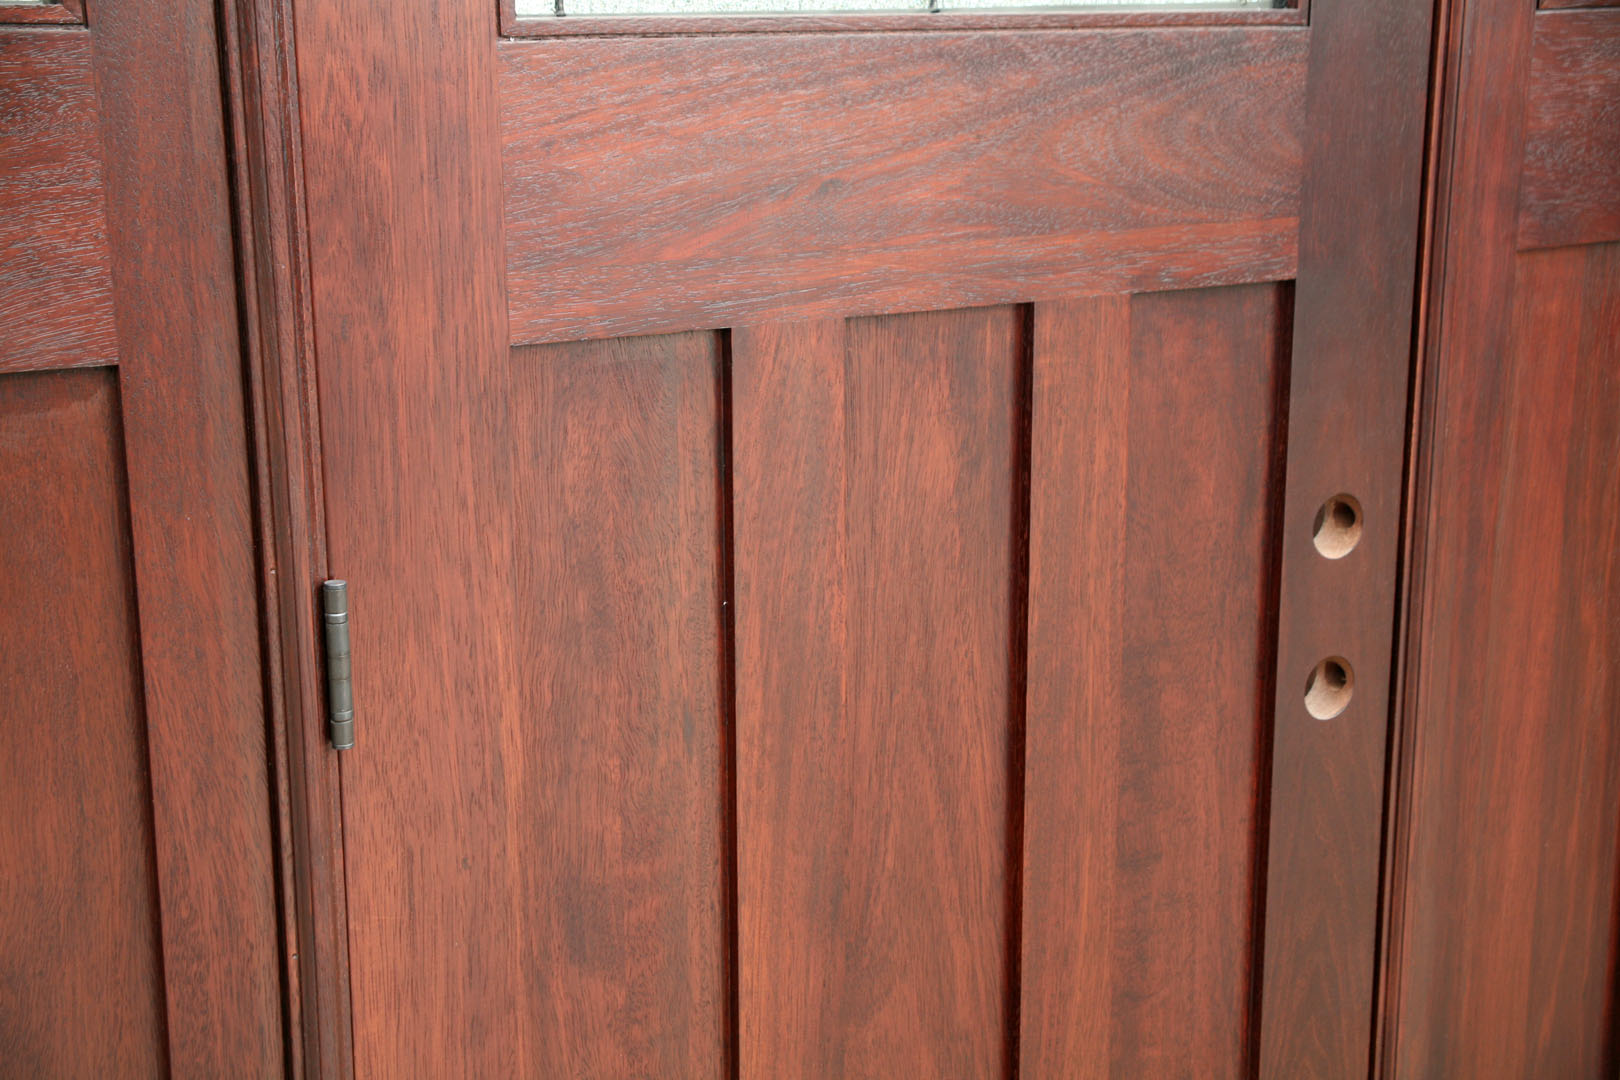 Craftsman Doors Craftsman Style Doors With Sidelights